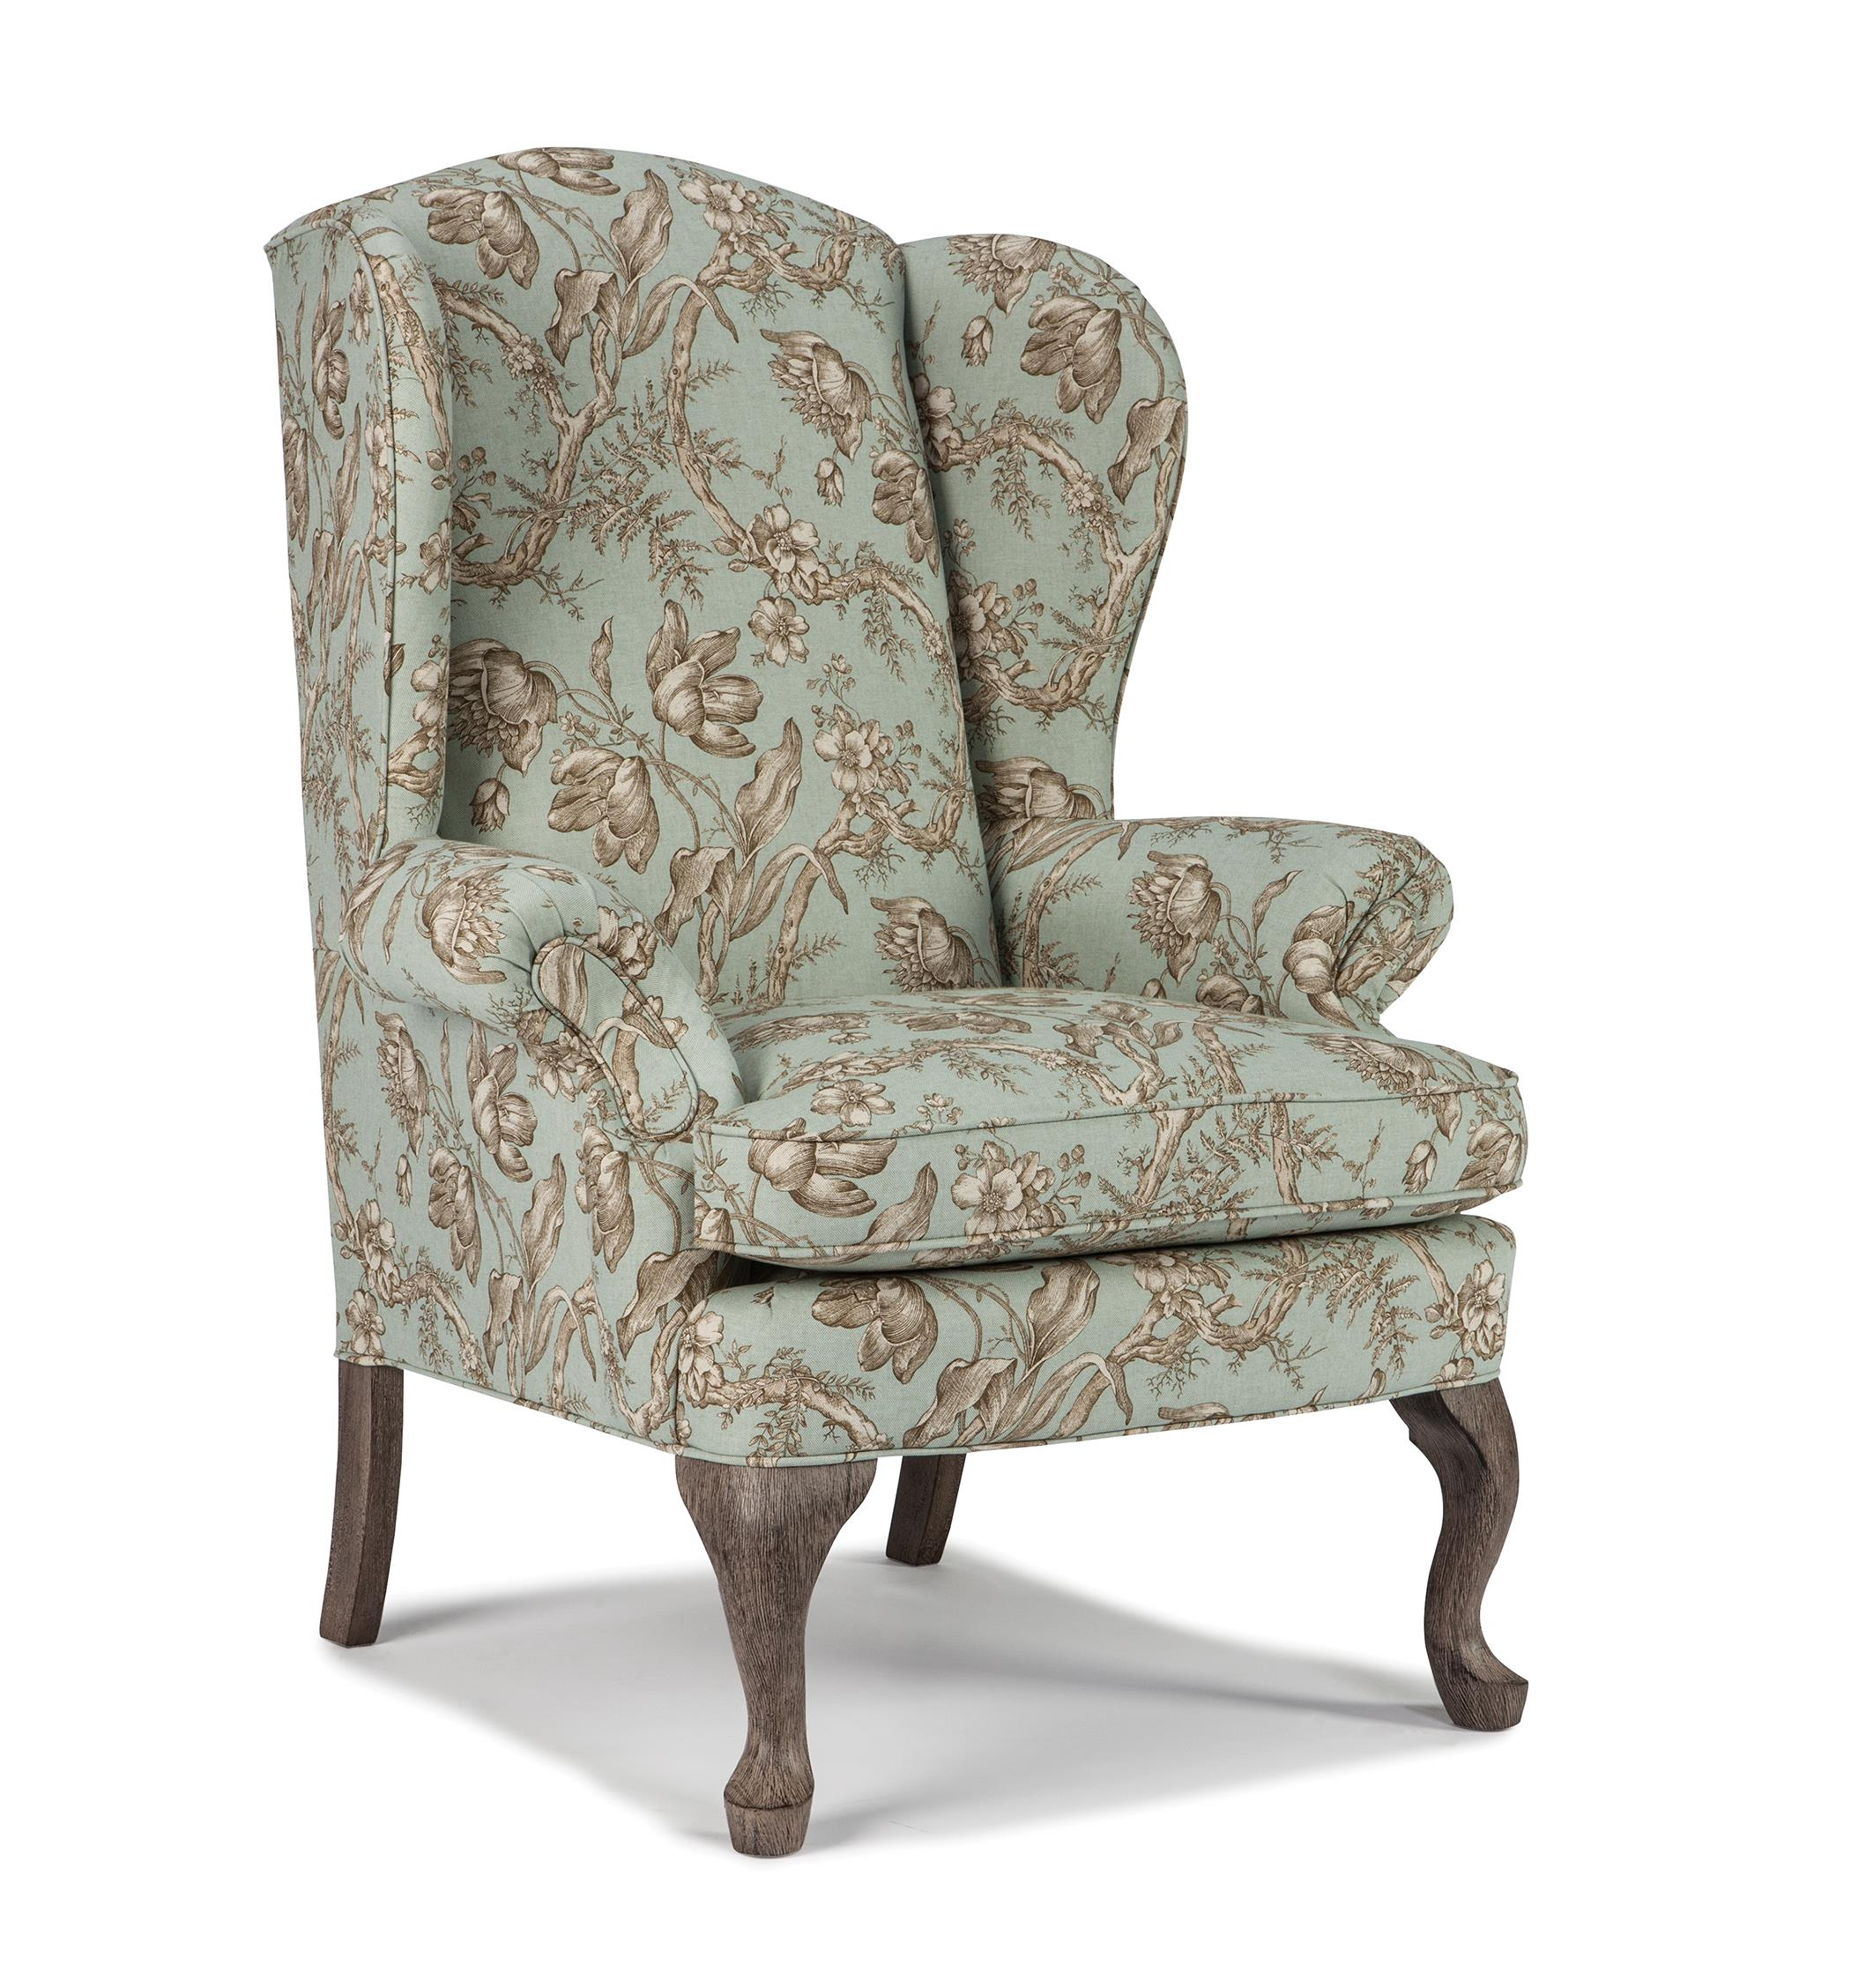 Wingback chair best home furnishings wing chairs sylvia wing chair - item number: 0710 ELUOCSW